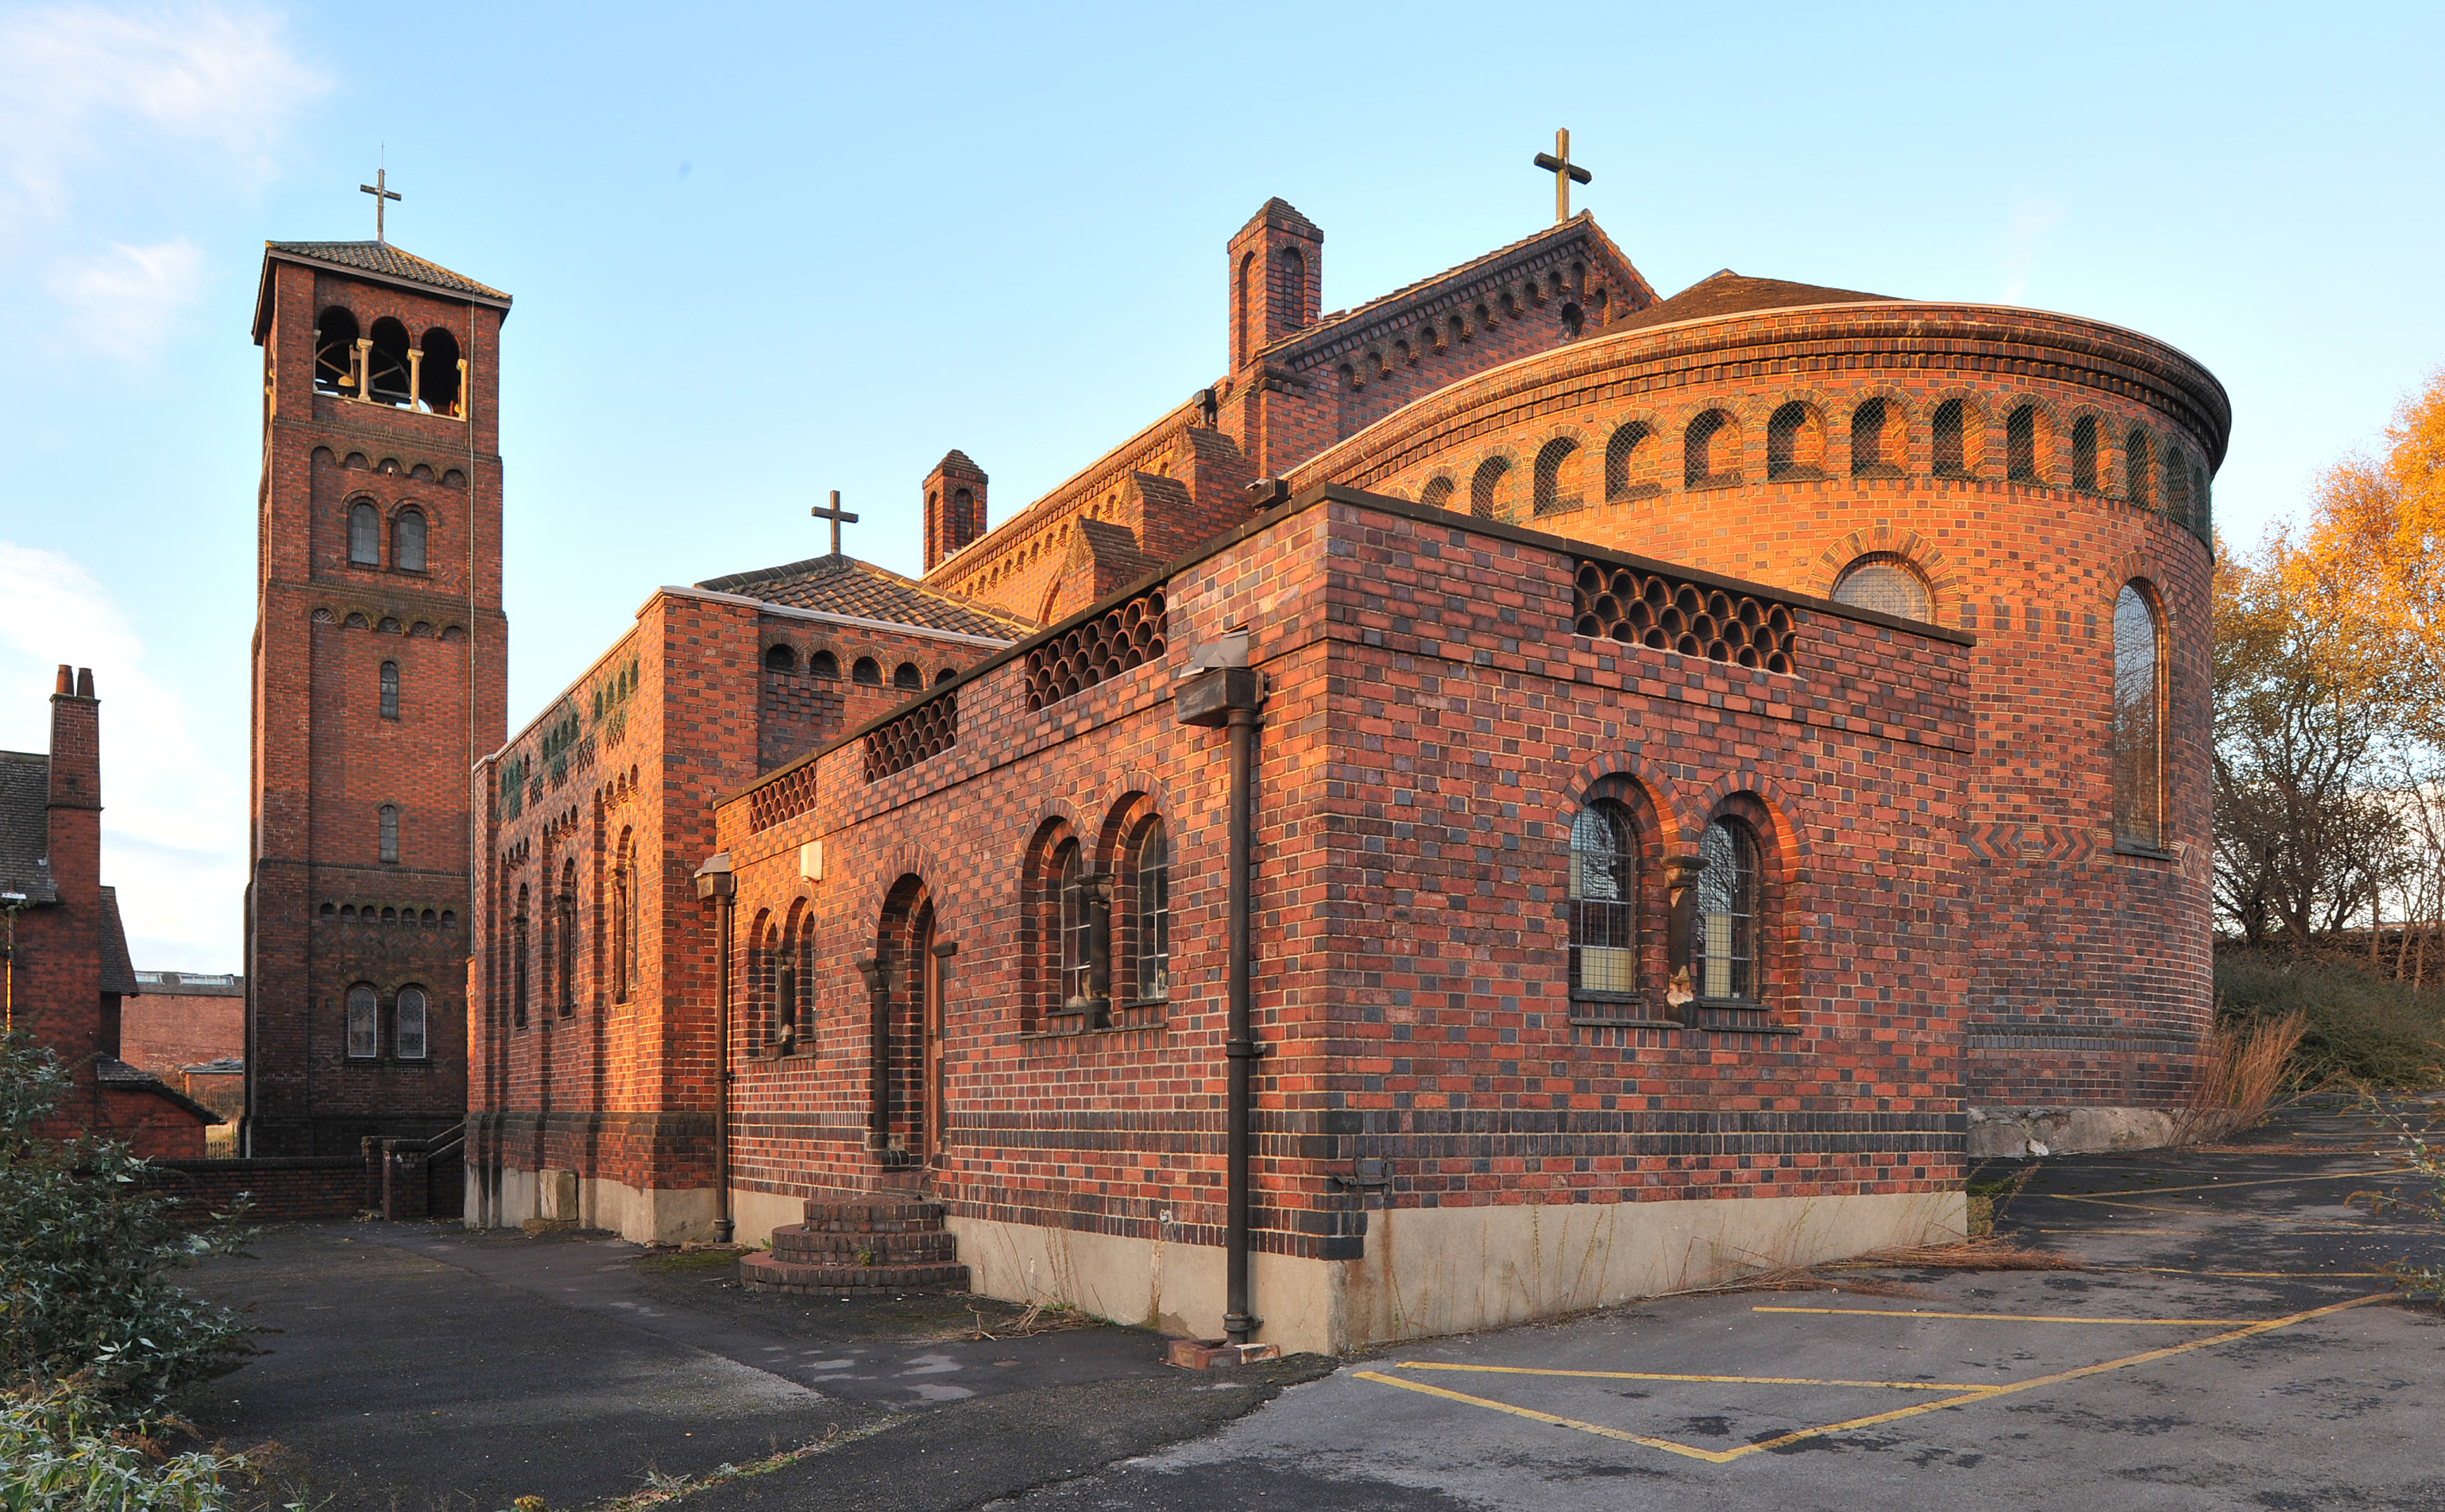 St Joseph's Catholic Church, Burslem, Staffordshire